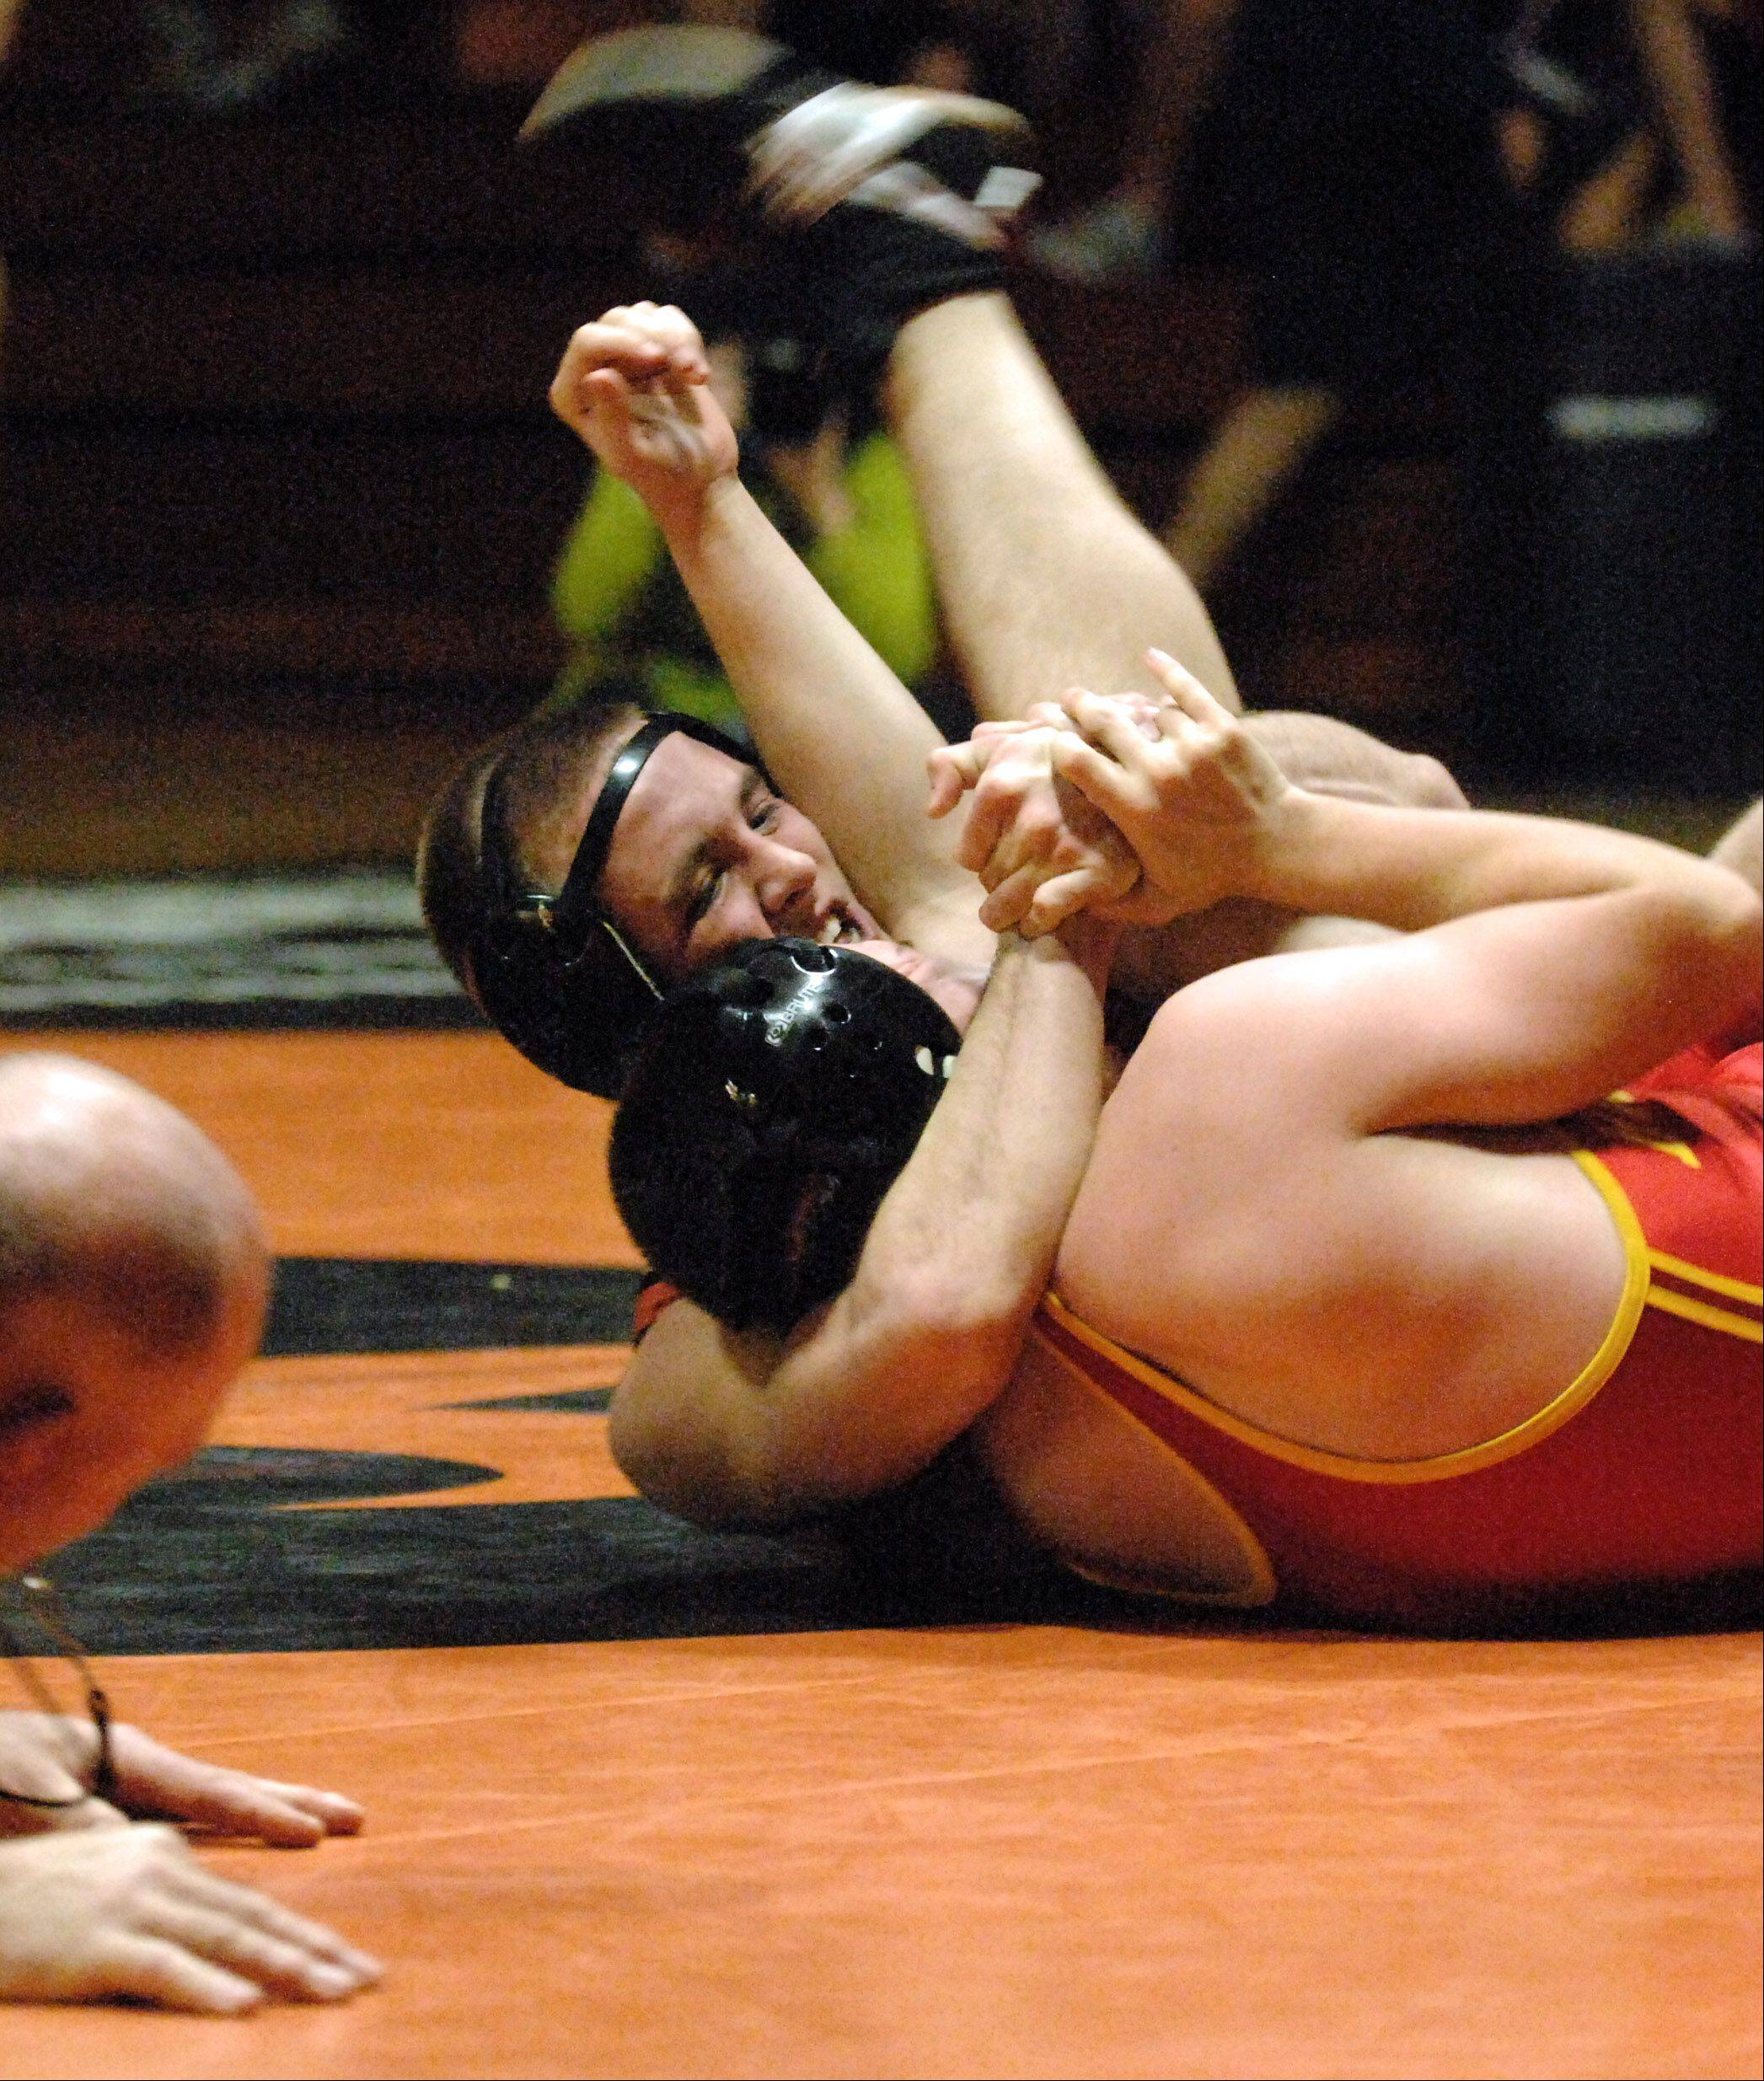 St. Charles East�s Cam Carlso defeats Batavia�s Nick Offutt at 170-pounds during Thursday�s wrestling action at St. Charles East.